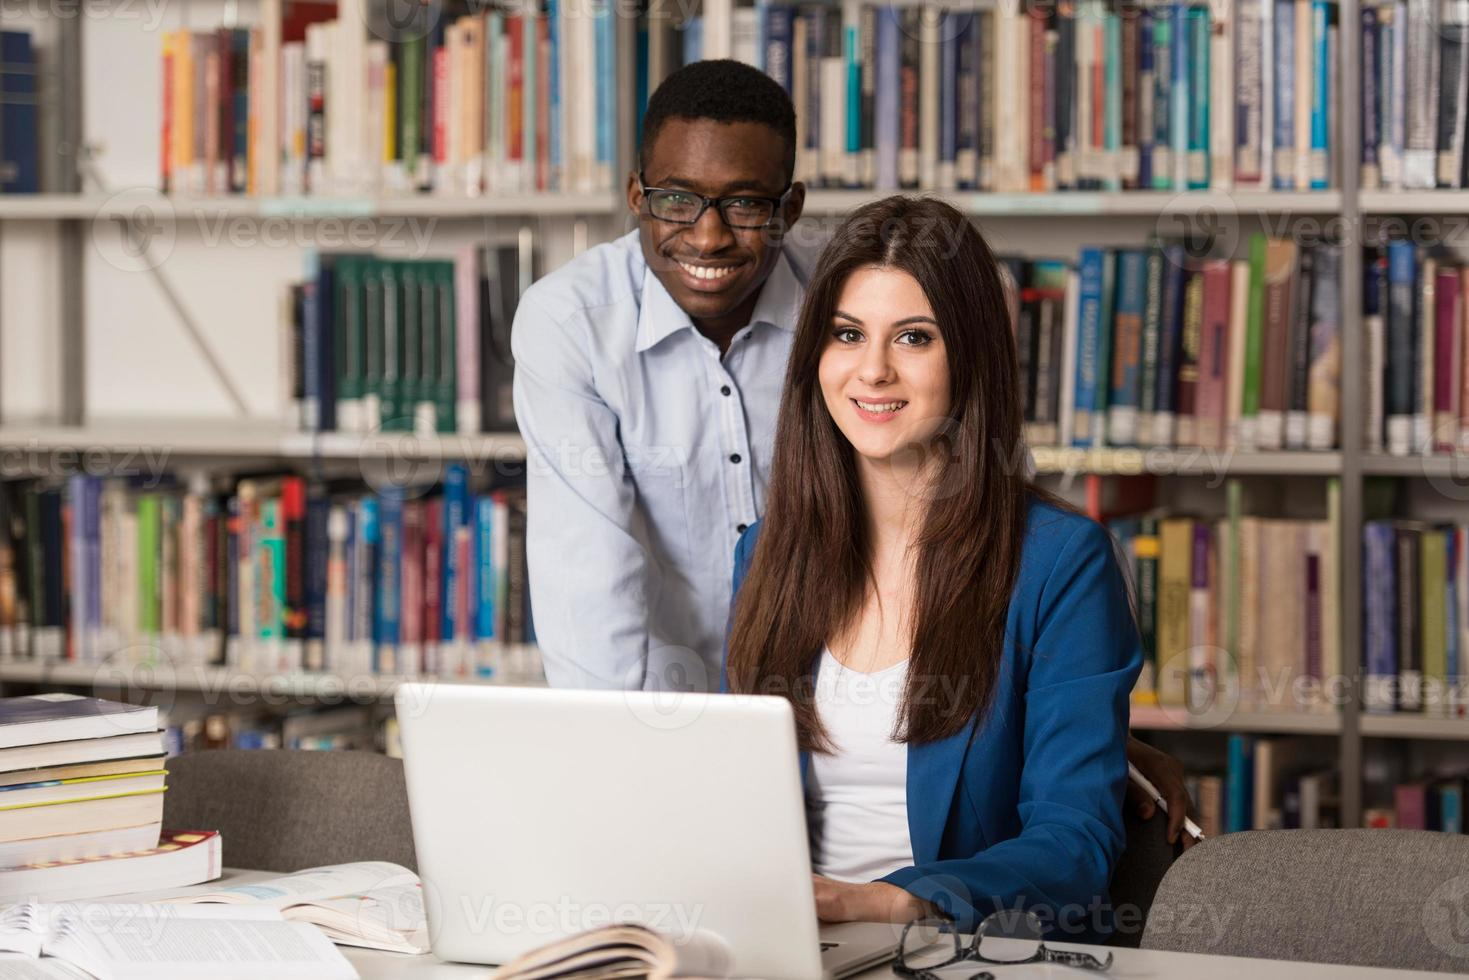 Couple Of Students With Laptop In Library photo